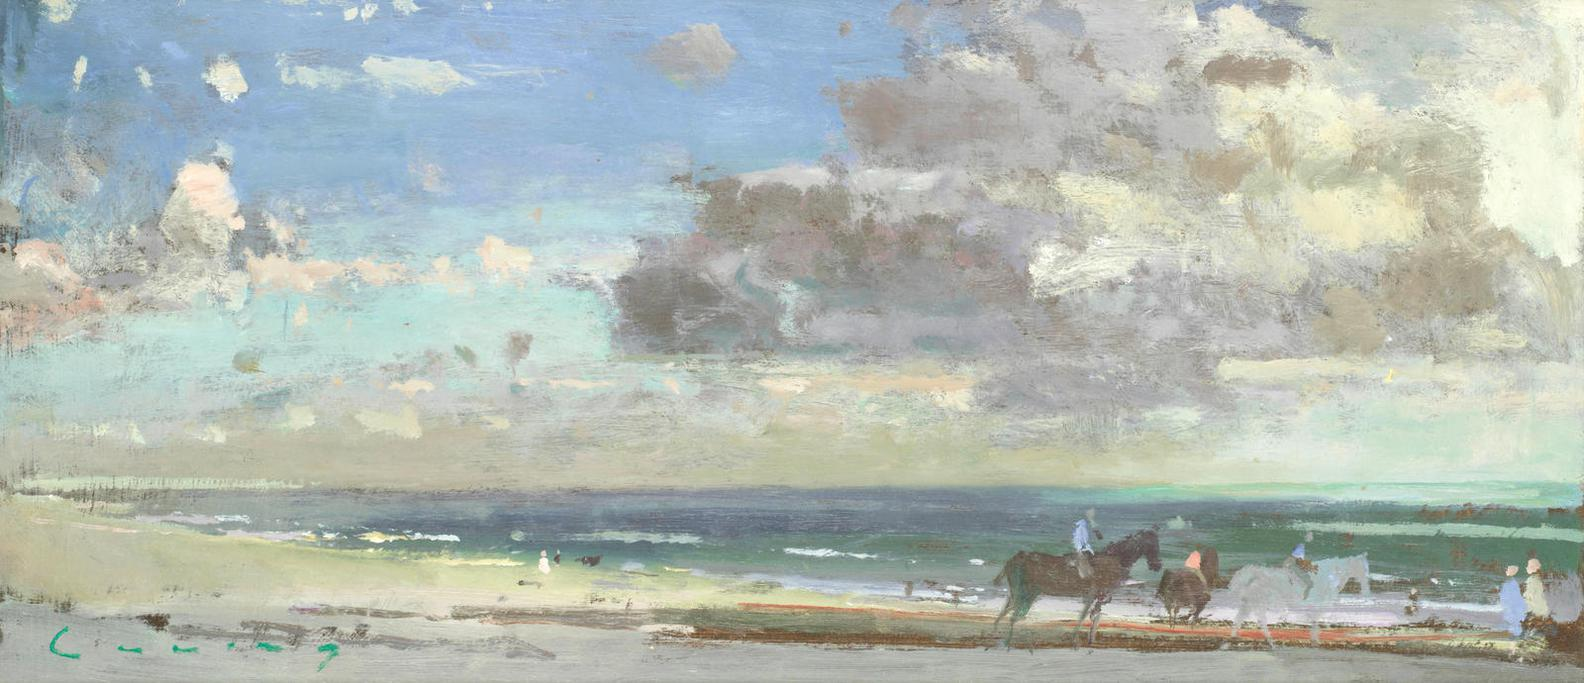 Frederick Cuming N.E.A.C. - Camber Sands With Horse Riders-